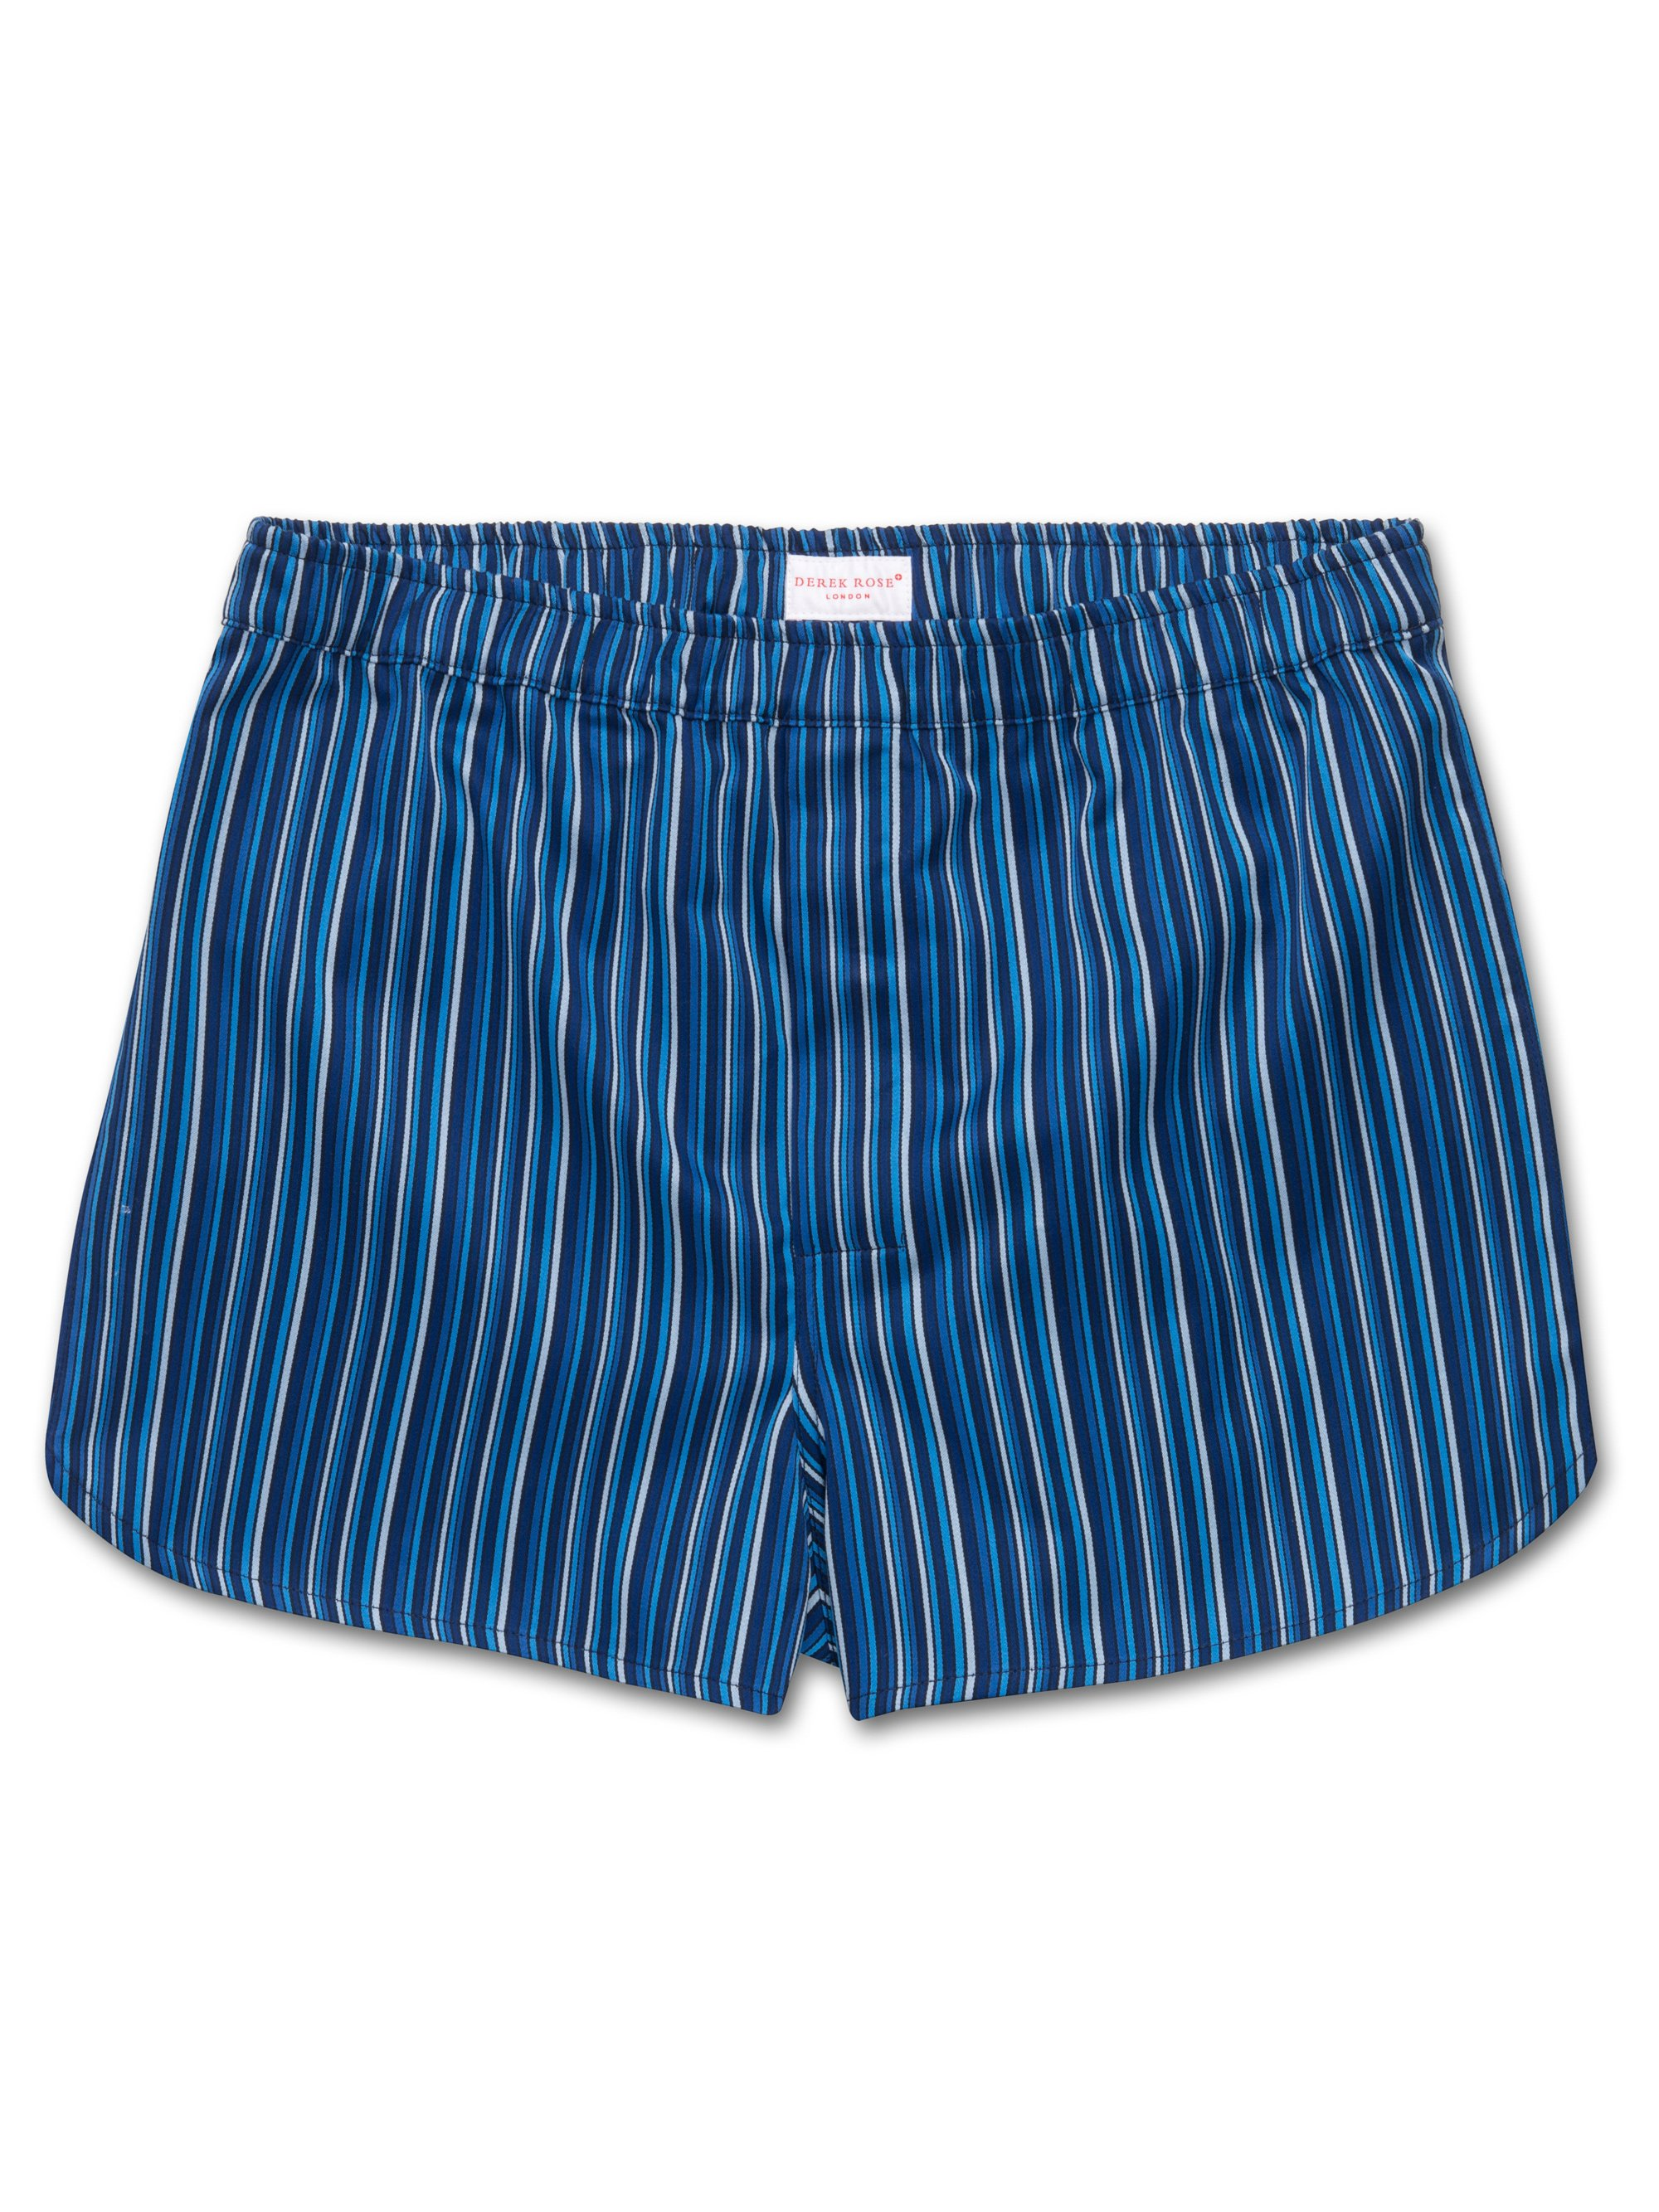 Men's Modern Fit Boxer Shorts Wellington 40 Cotton Full Satin Stripe Blue